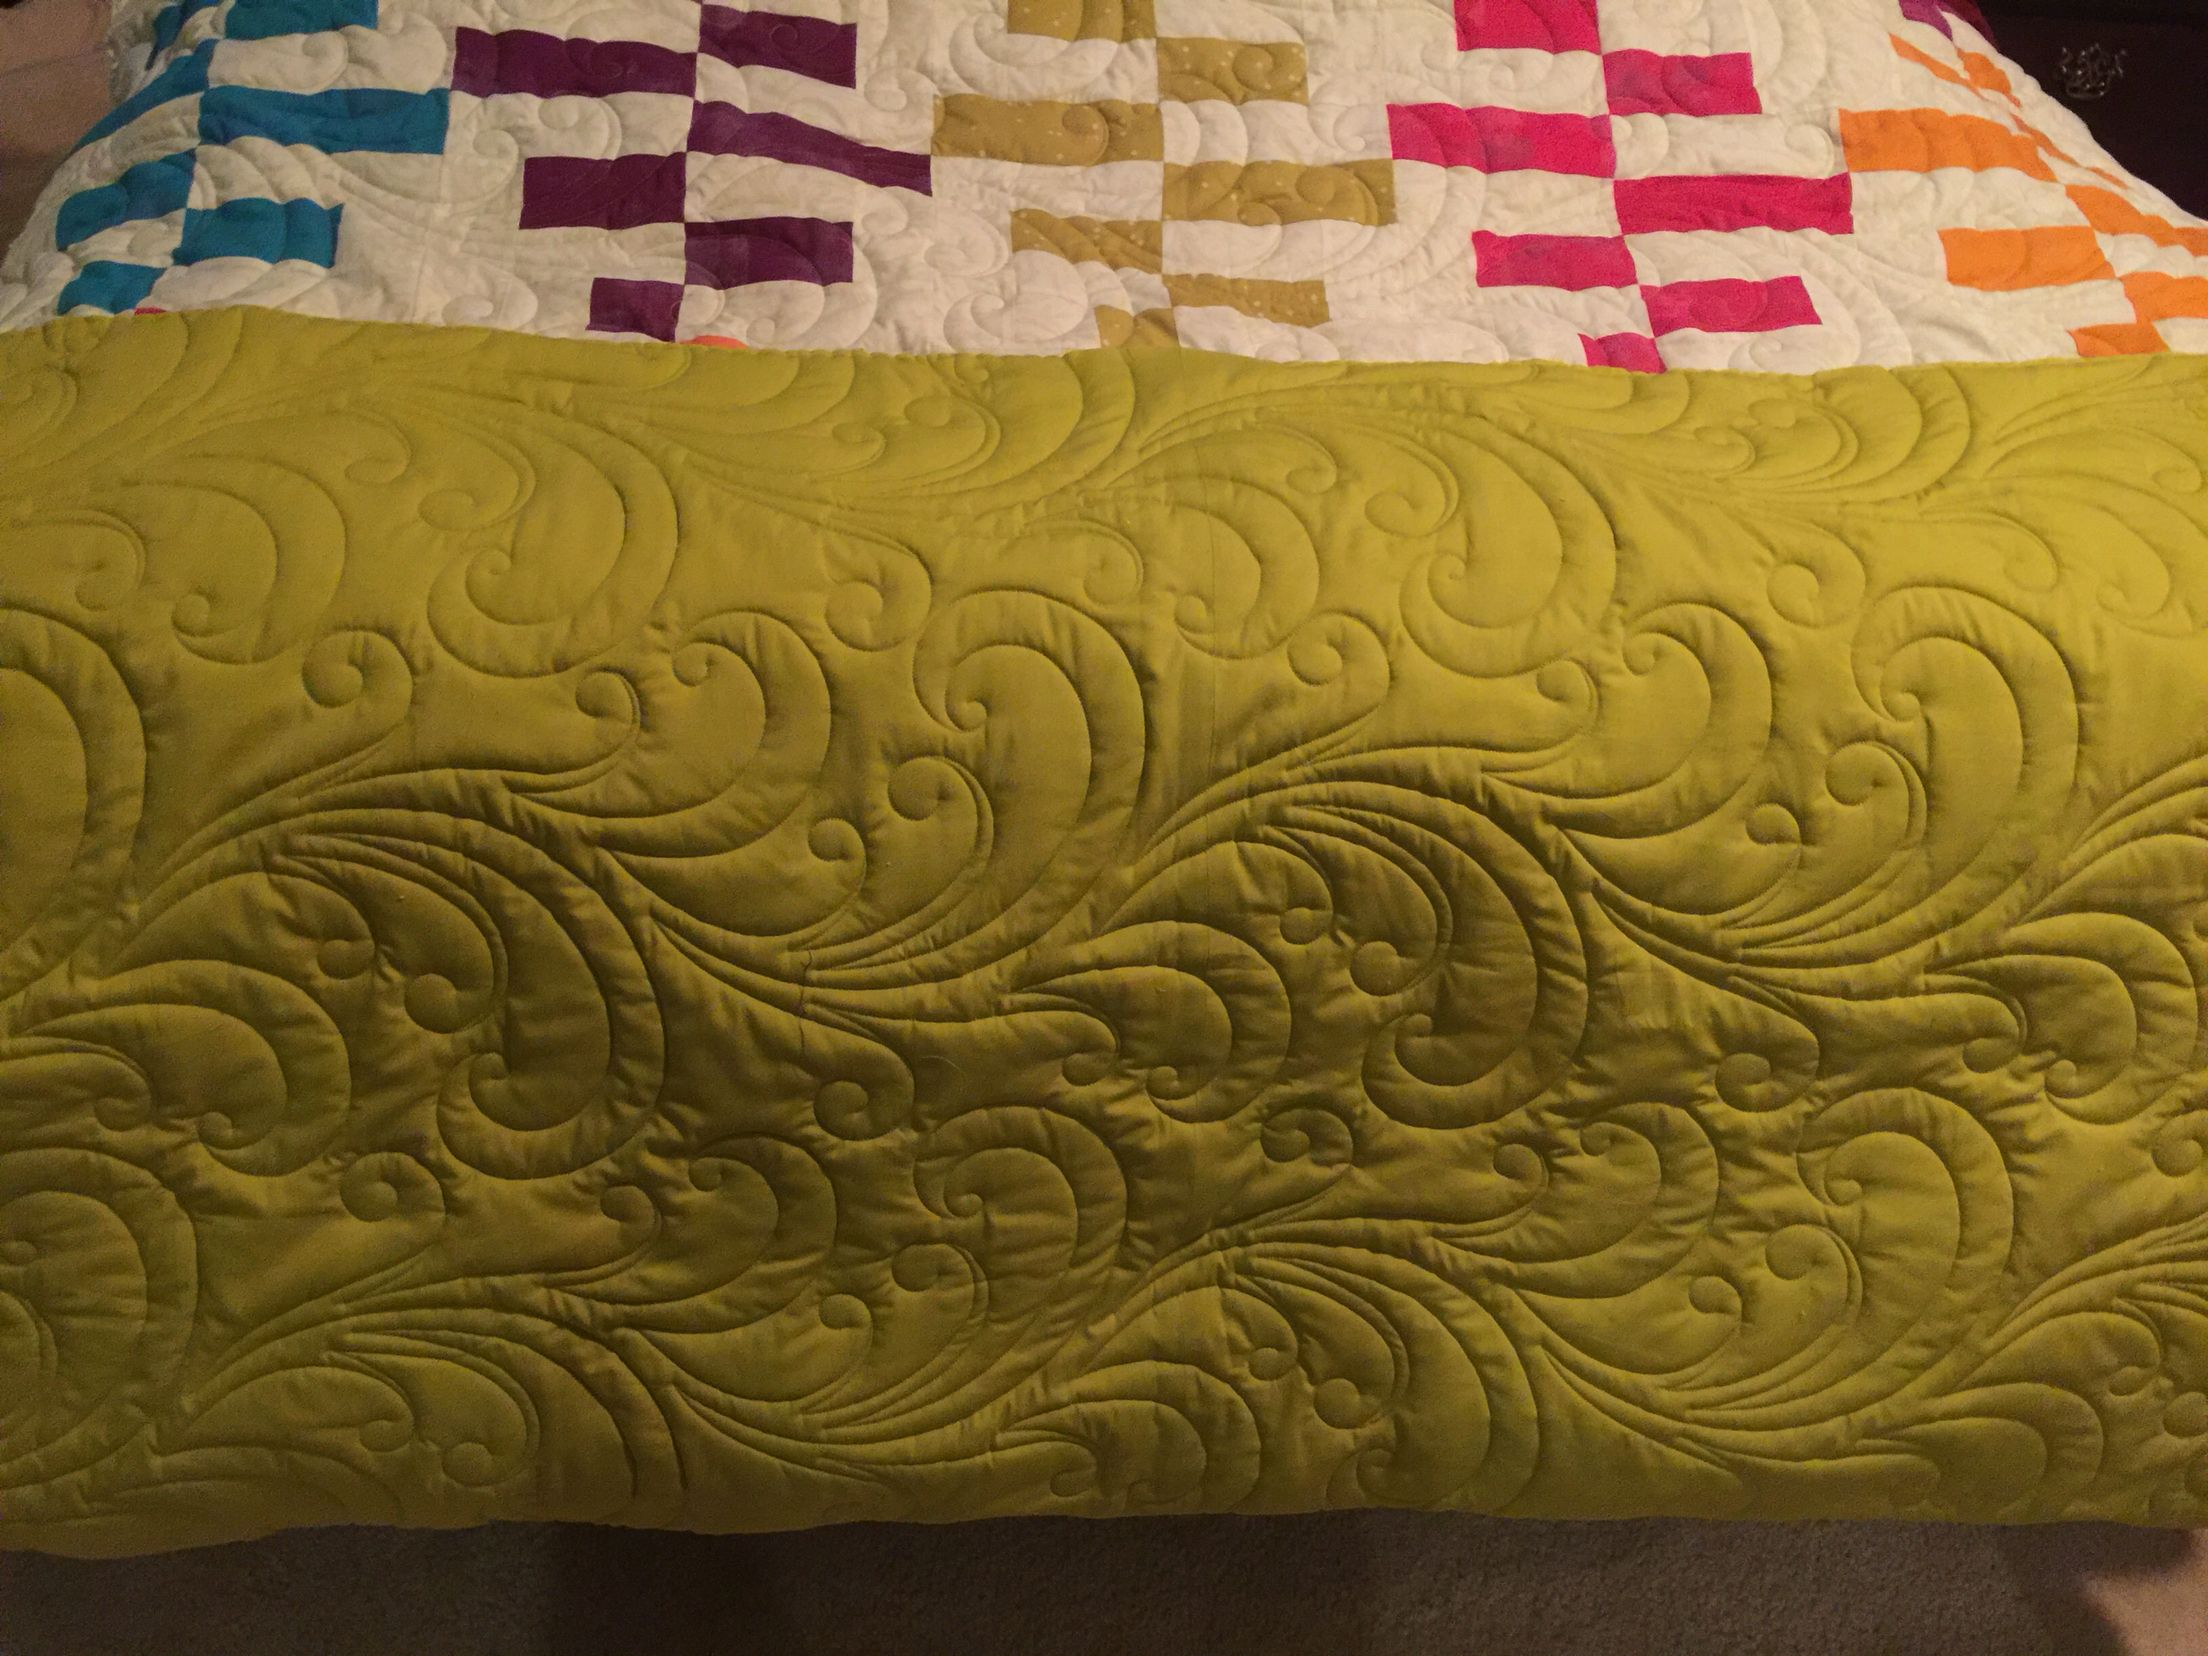 Here is the back of my Ripple Quilt.  The pattern is from GE Designs.  Fabric is mostly grunge with Hoffman batik on the back.  This is a double wool batting which shows the quilting so fabulously.  Created and longarmed by Kate Quinn of FabriKated Quilts